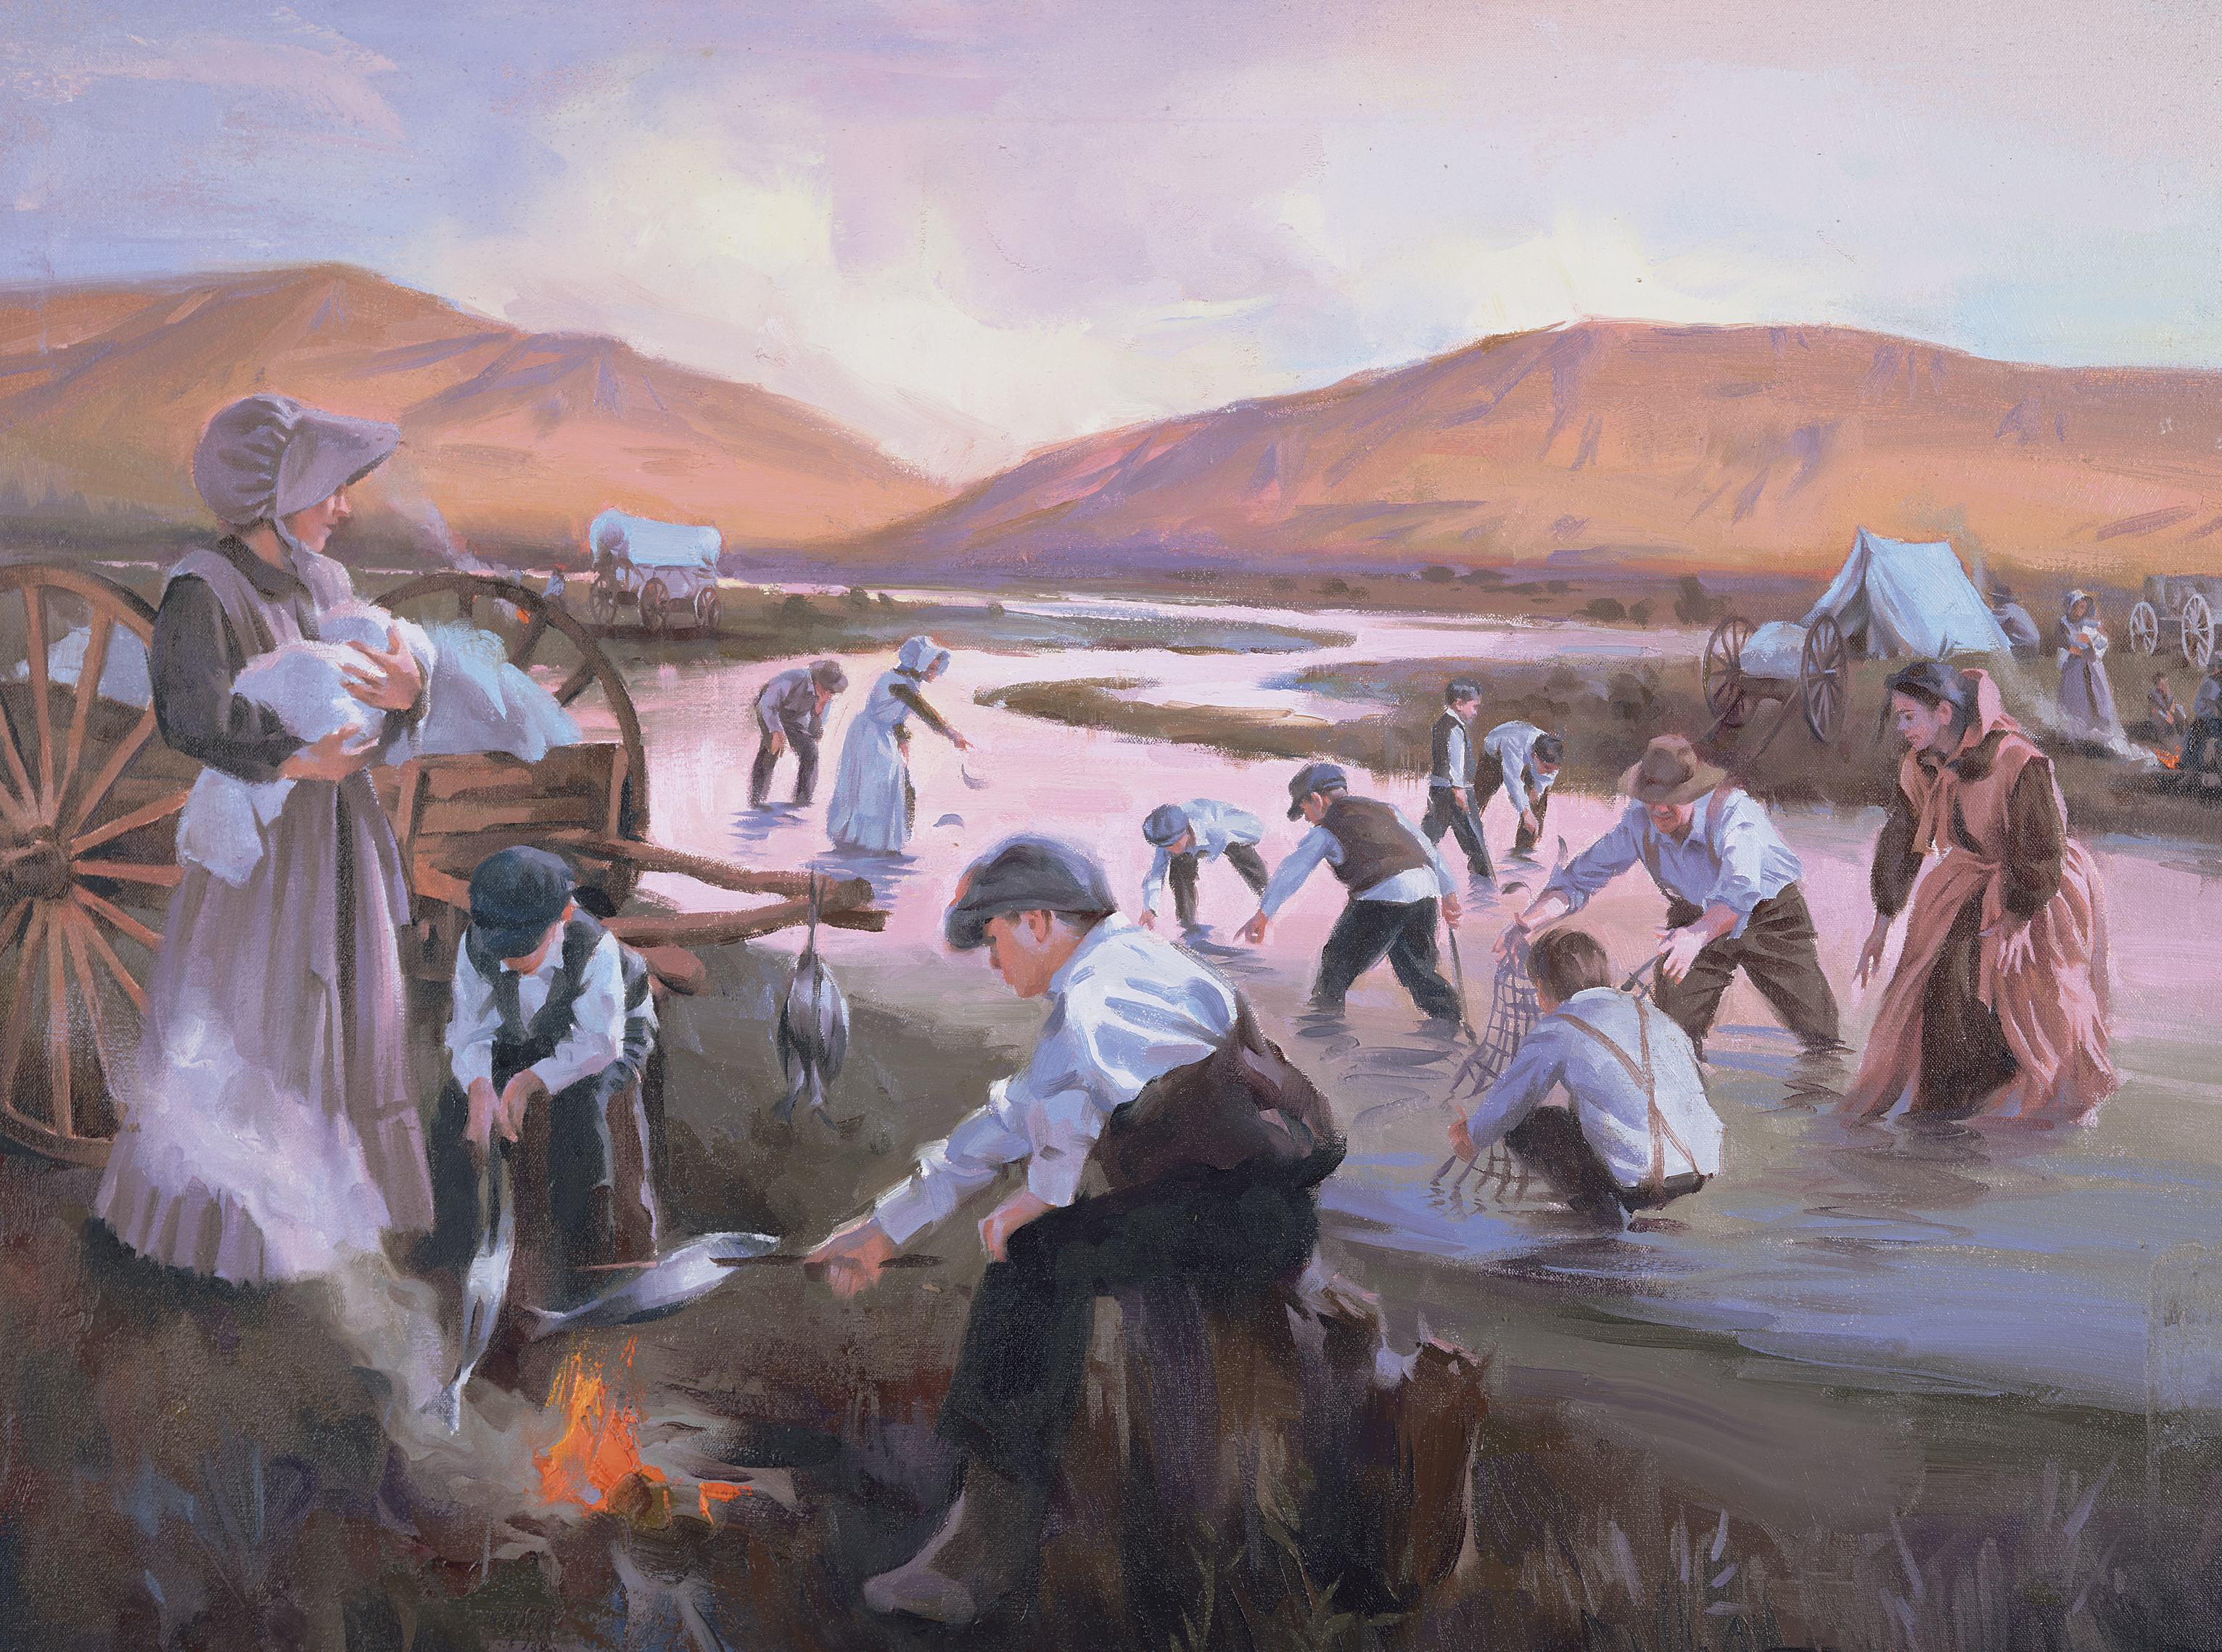 Pioneers Catching Fish, by Sam Lawlor